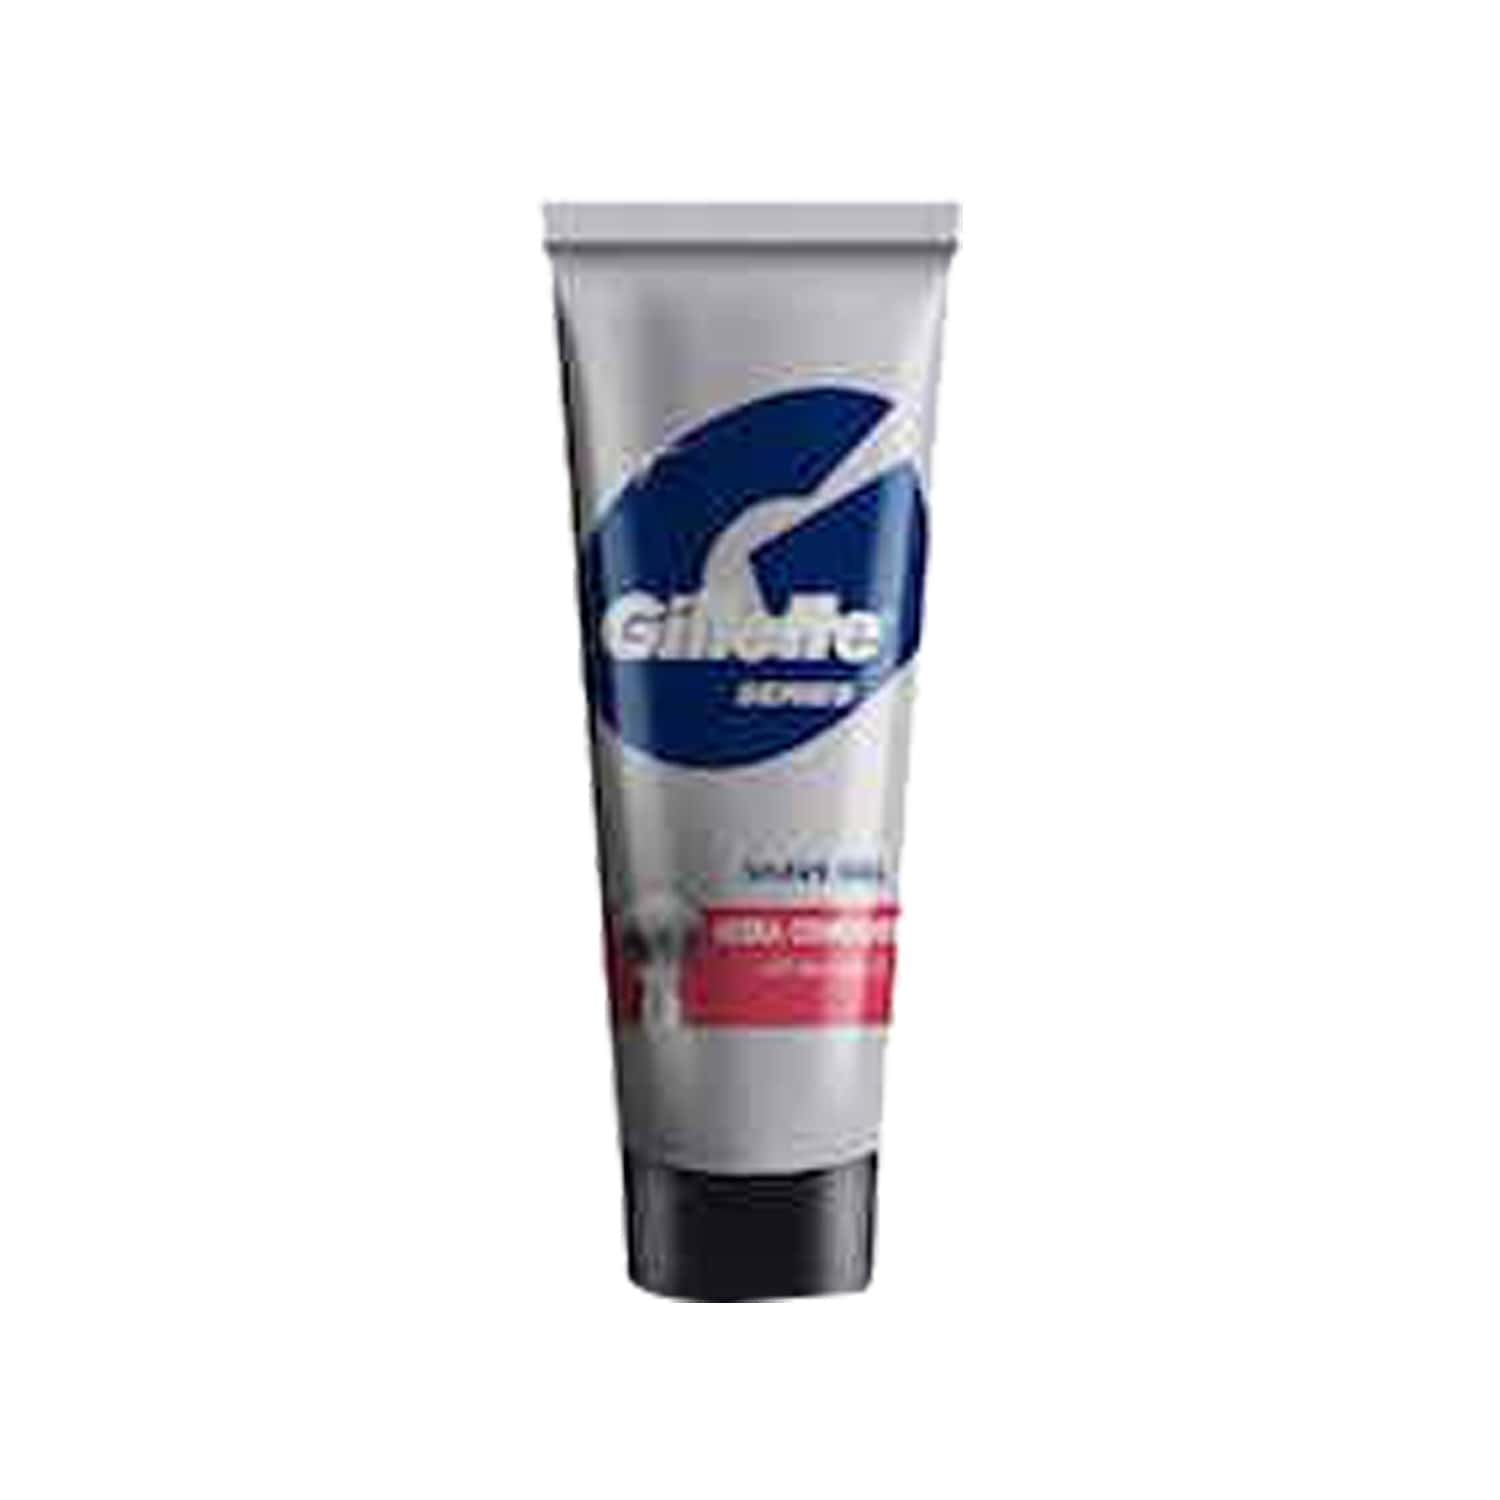 Gillette Ultra Comfort Pre Shave Gel Tube 60 Gm